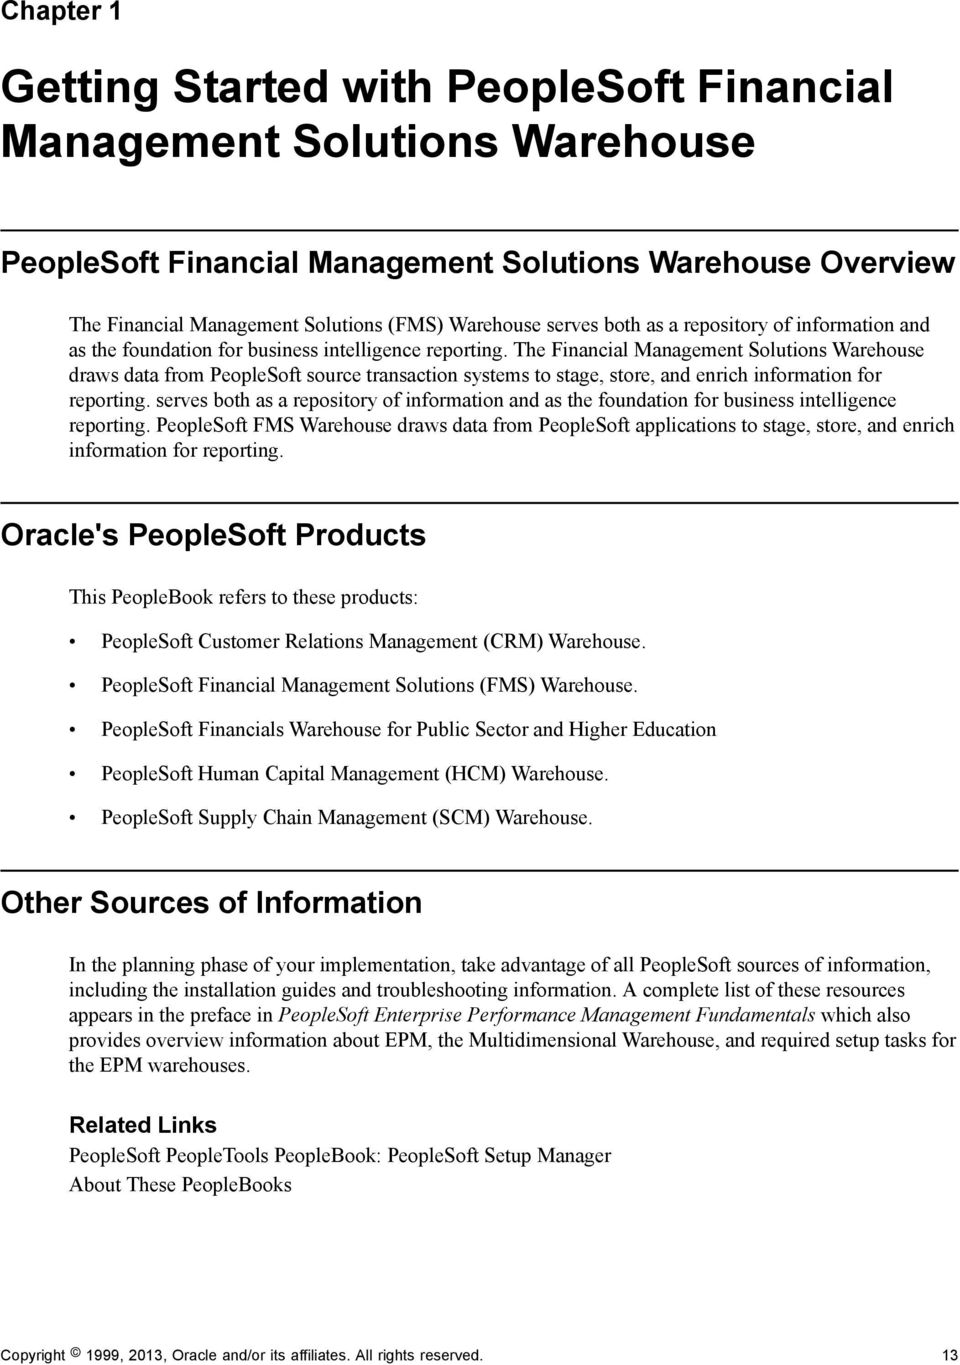 The Financial Management Solutions Warehouse draws data from PeopleSoft source transaction systems to stage, store, and enrich information for reporting.